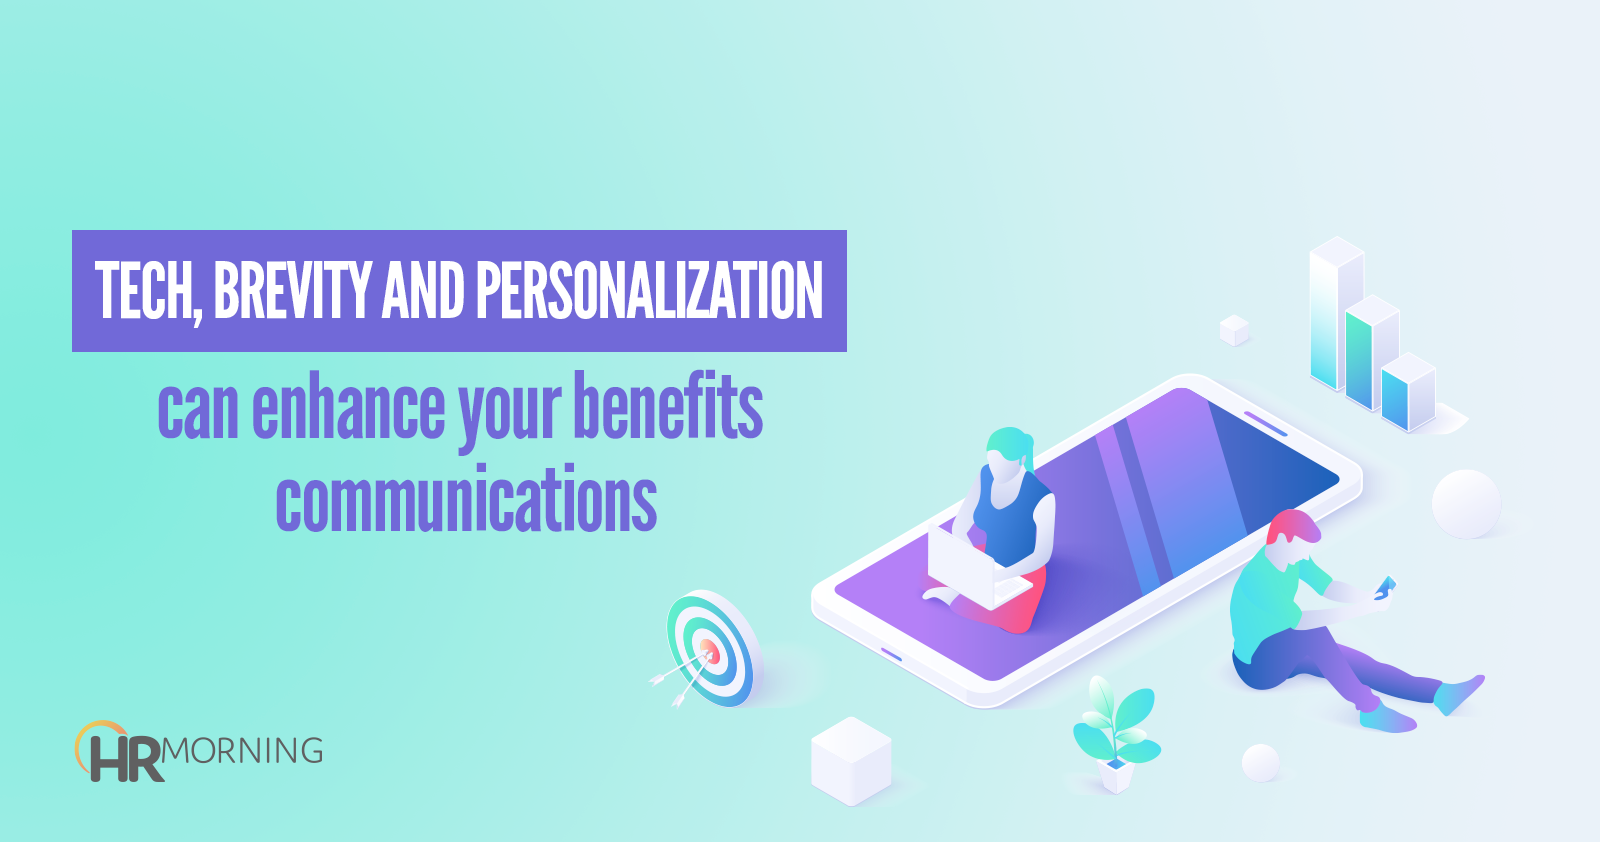 tech brevity and personalization can enhance your benefits communications